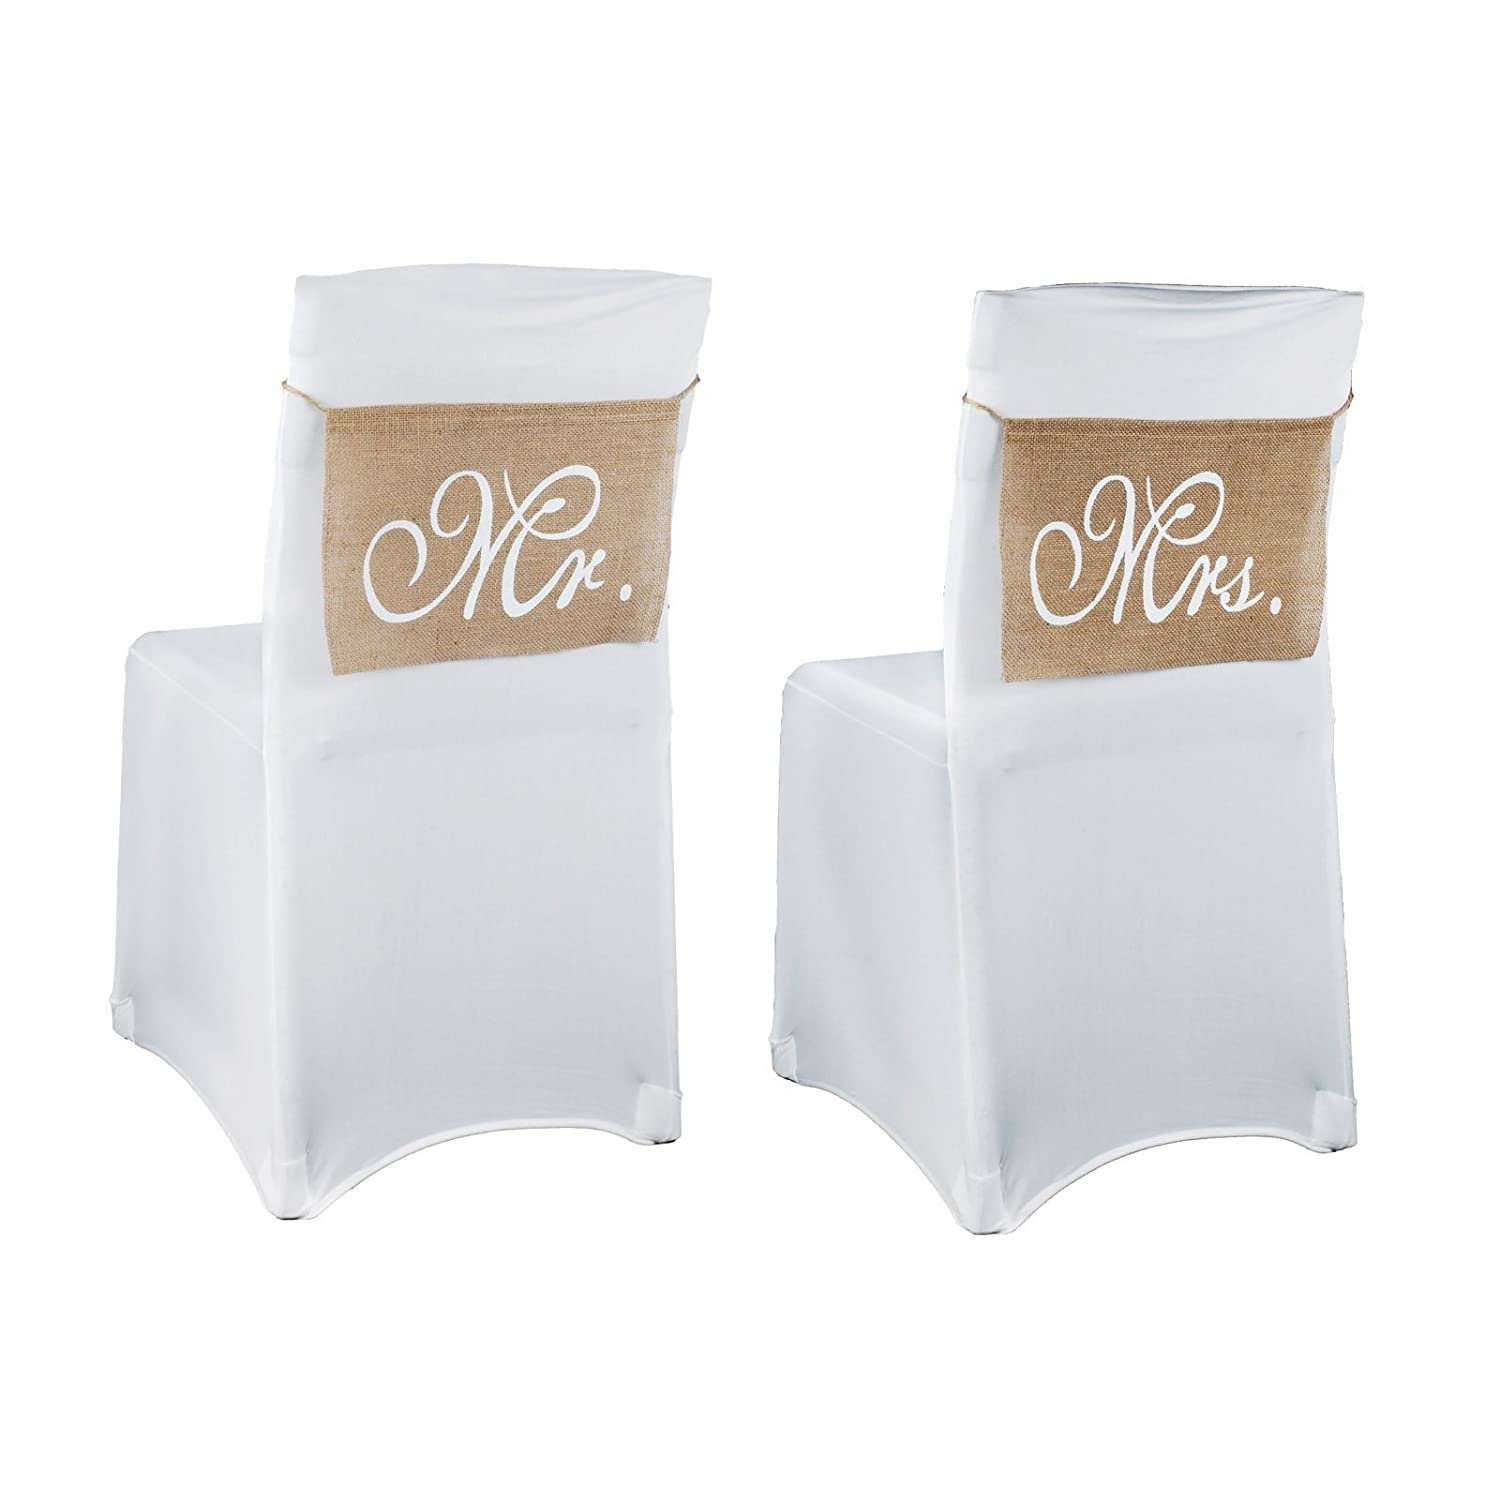 Vlovelife Mr & Mrs Burlap Chair Banner Set Chair Sign Garland Rustic Vintage Wedding Party Chair Decoration - 14'' x 9'' - 1 Pair SYNCHKG091689